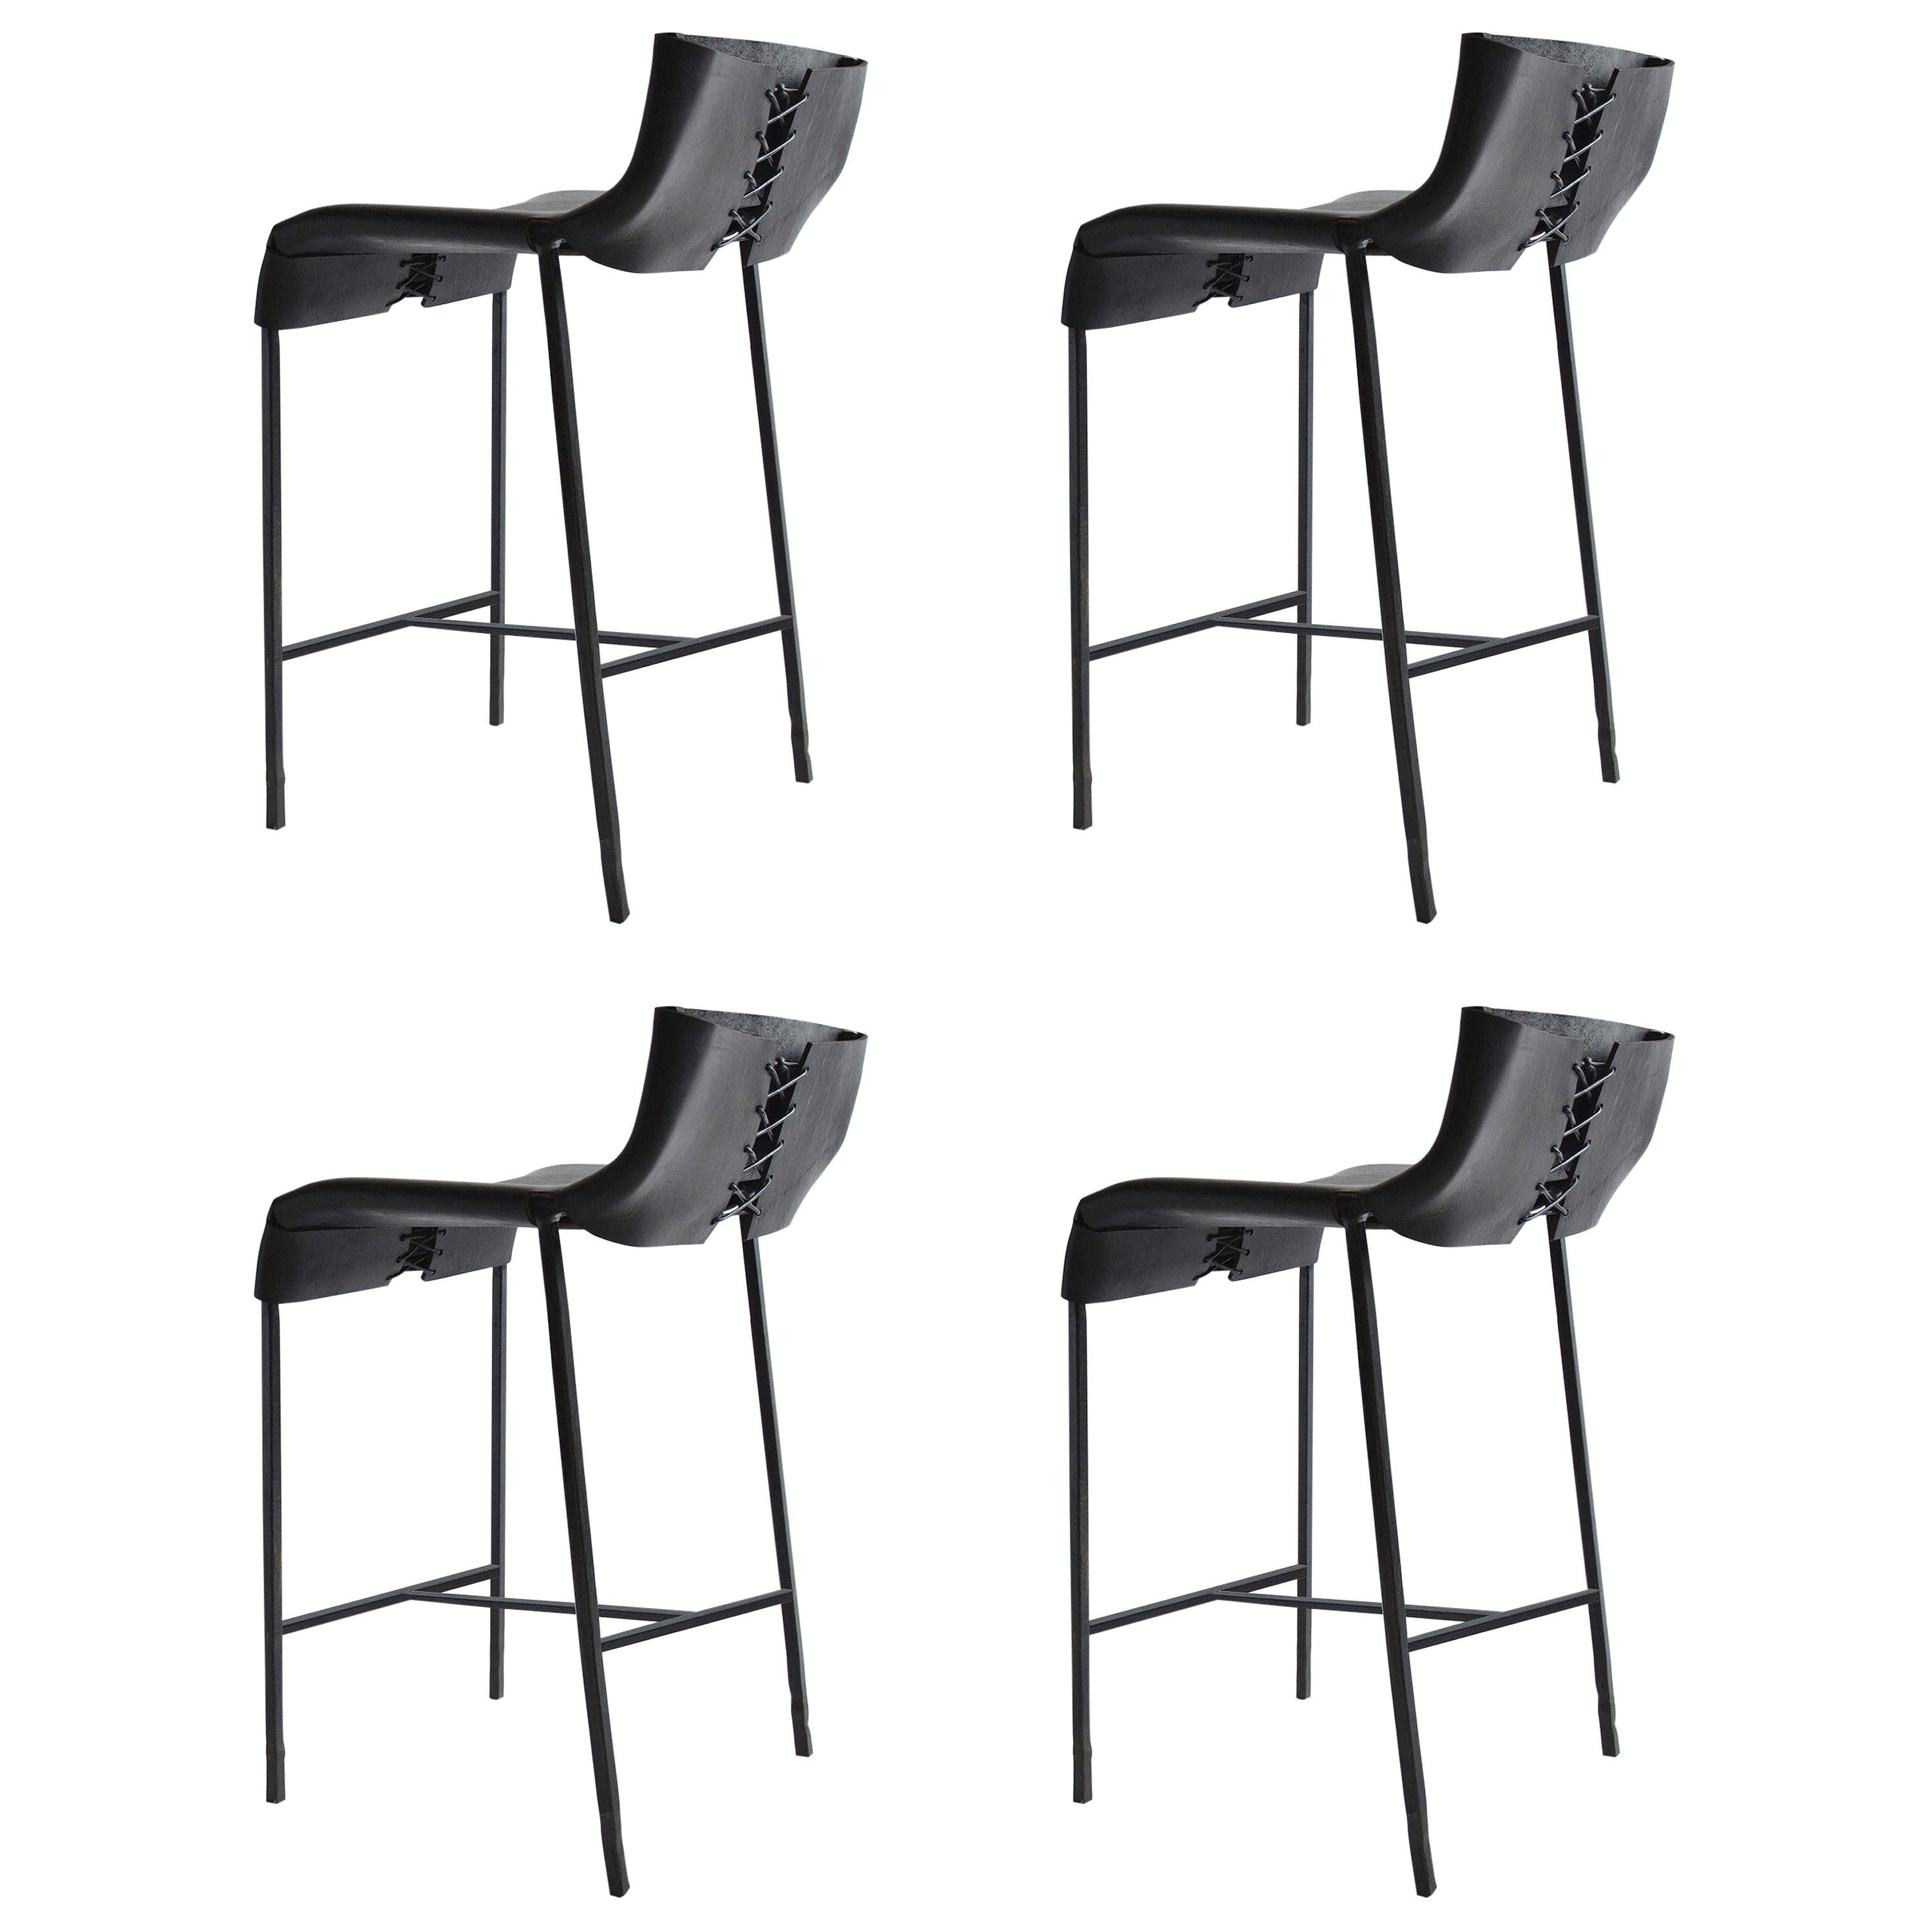 Set of 4 Counter or Bar Stools Modern/Contemporary Blackened Steel and Leather